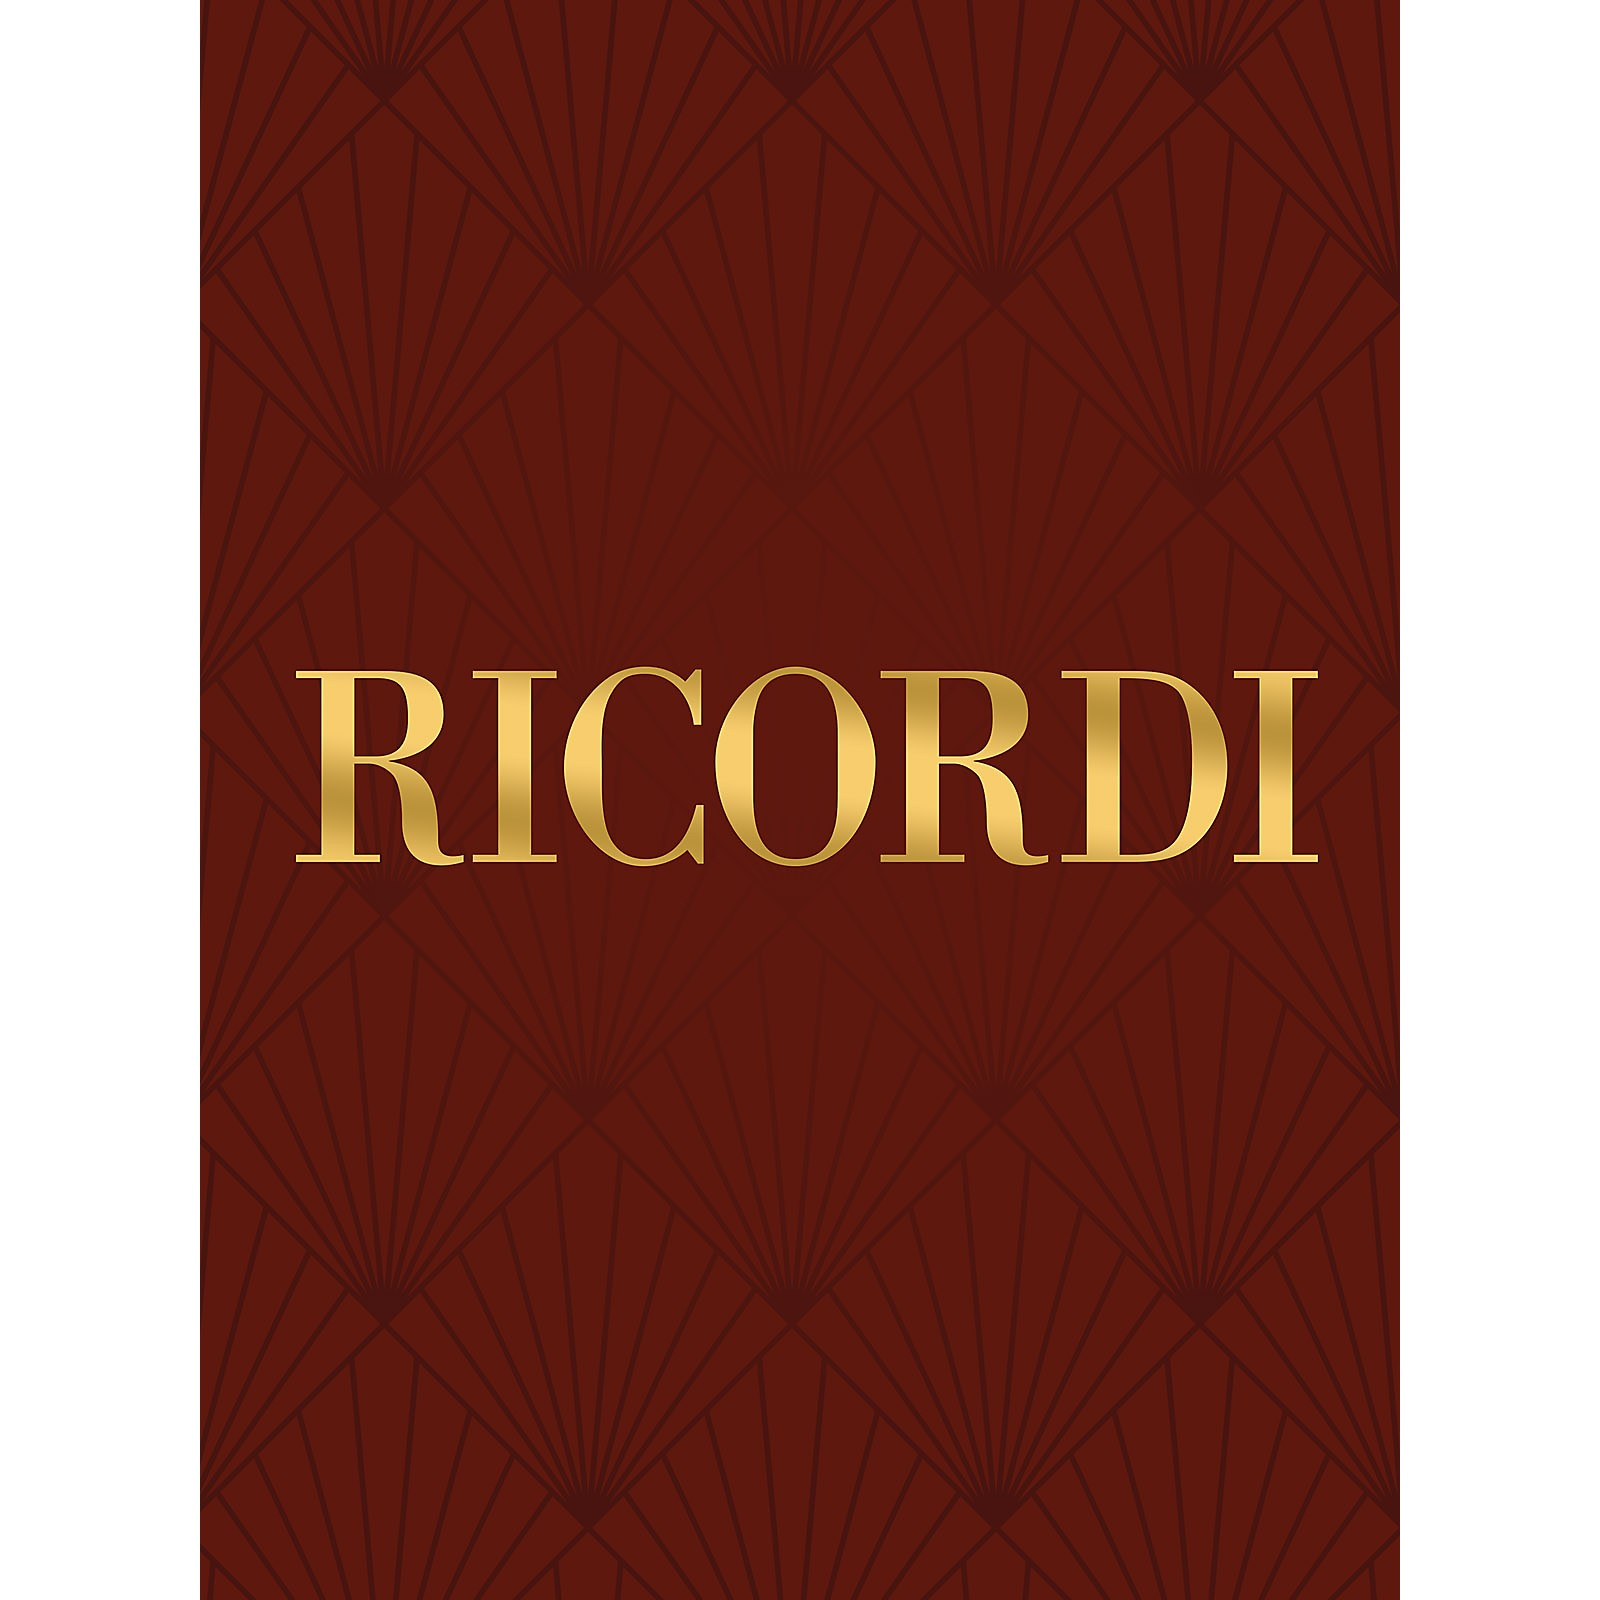 Ricordi 30 Elementary Studies (Piano Technique) Piano Method Series Composed by Ettore Pozzoli